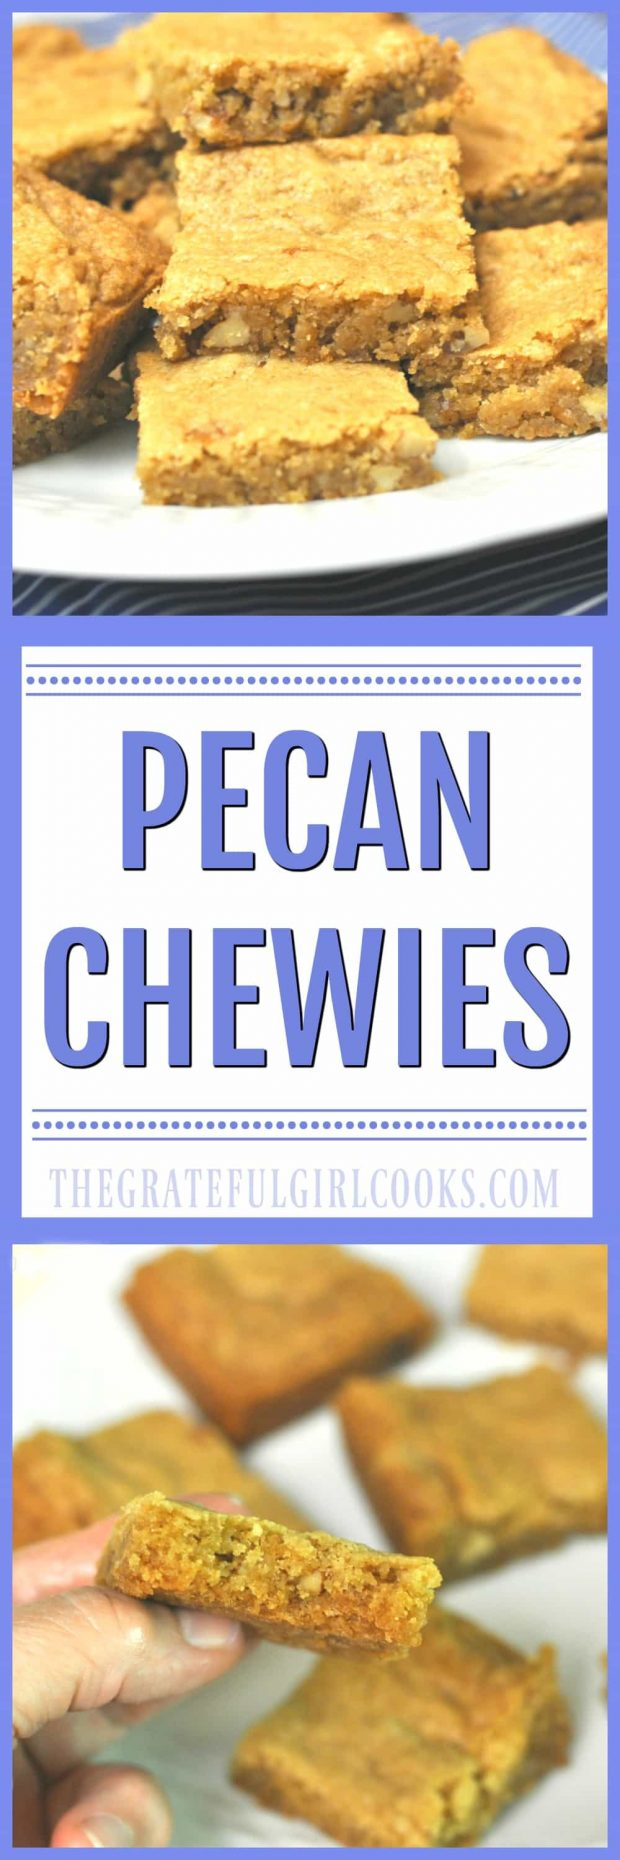 Pecan Chewies / The Grateful Girl Cooks! Make two dozen of these EASY, delicious, chewy, buttery bar cookies in no time at all!